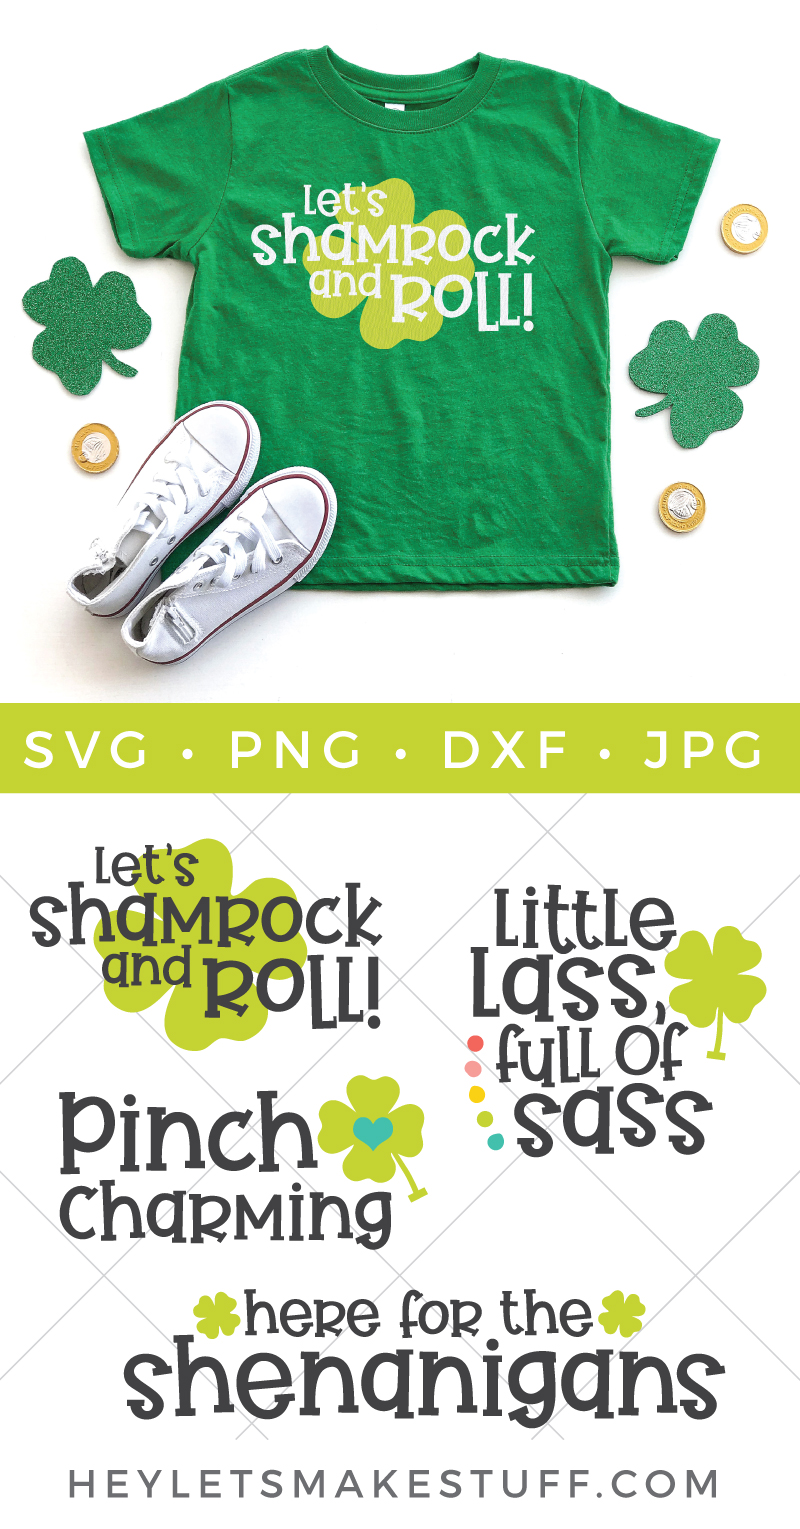 Shamrocks, leprechauns, pots of gold and rainbows - it's almost like St. Patrick's Day was made for kids. Use this Kids St. Patrick's Day SVG Bundle to add some luck of the Irish embellishment to t-shirts, onesies, greeting cards, treat bags and so much more! via @heyletsmakestuf